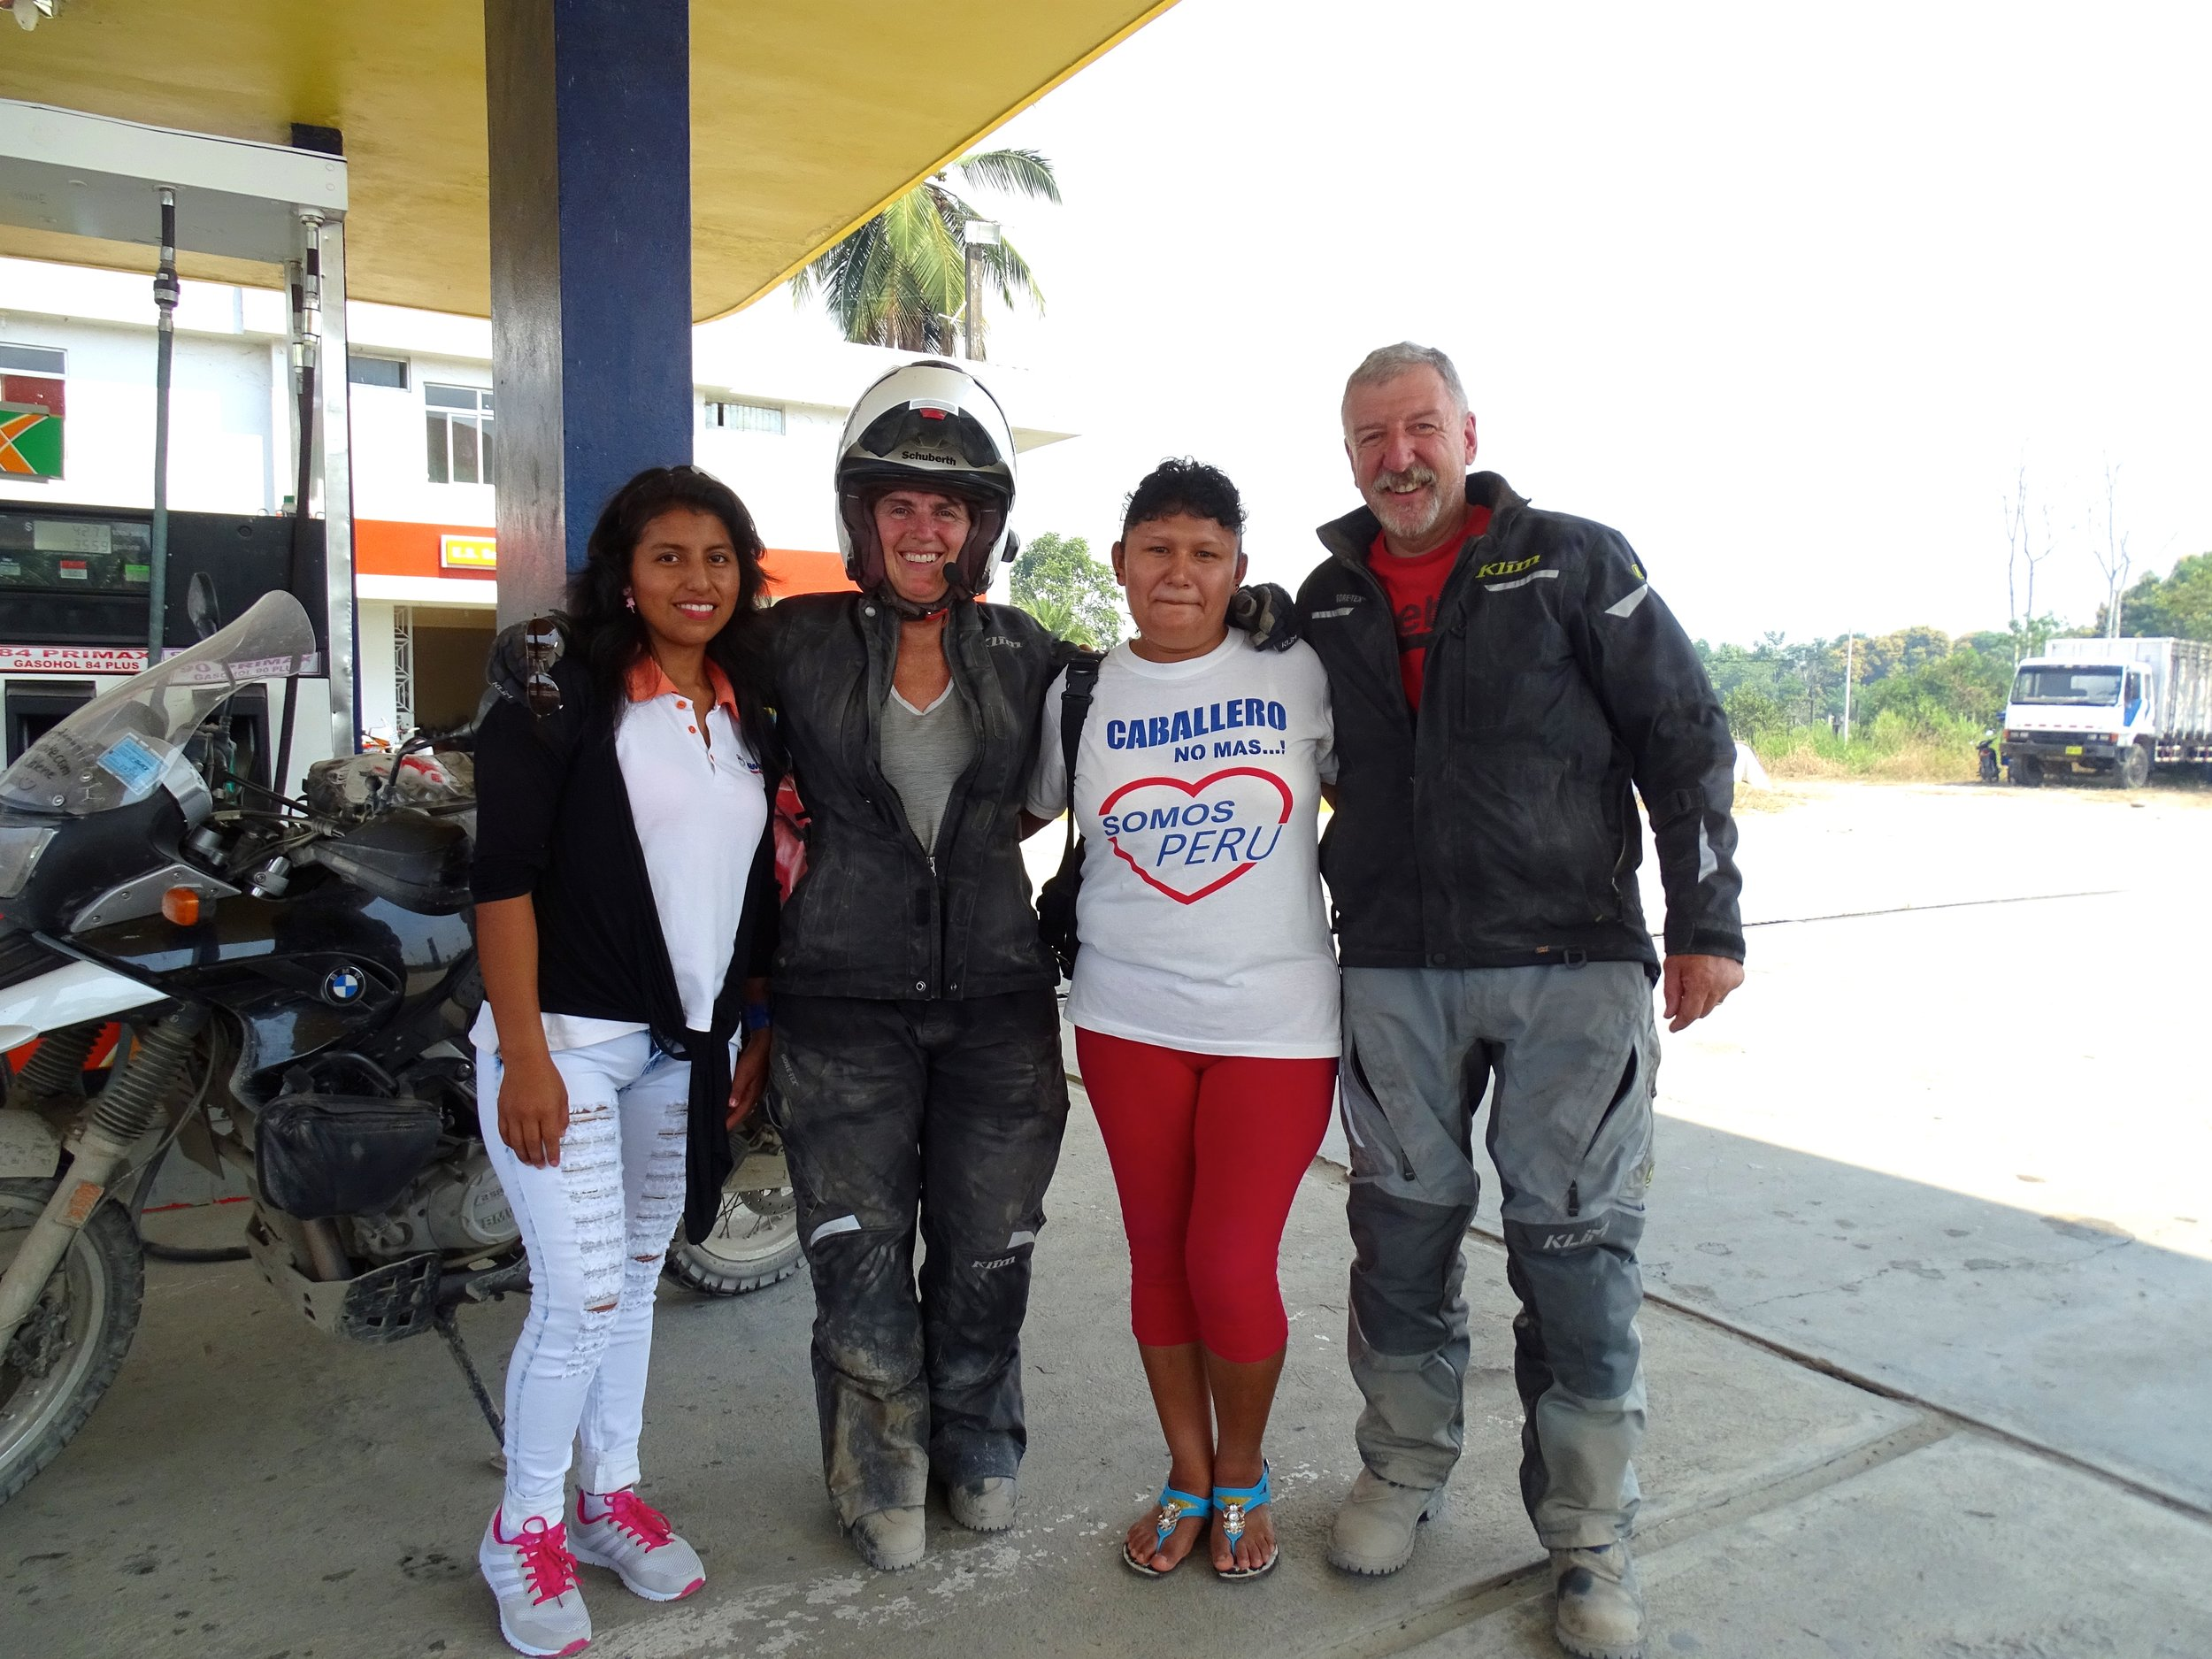 These folks at the gas station wanted to pose with us and take photos so, we played along with the smiling fun.